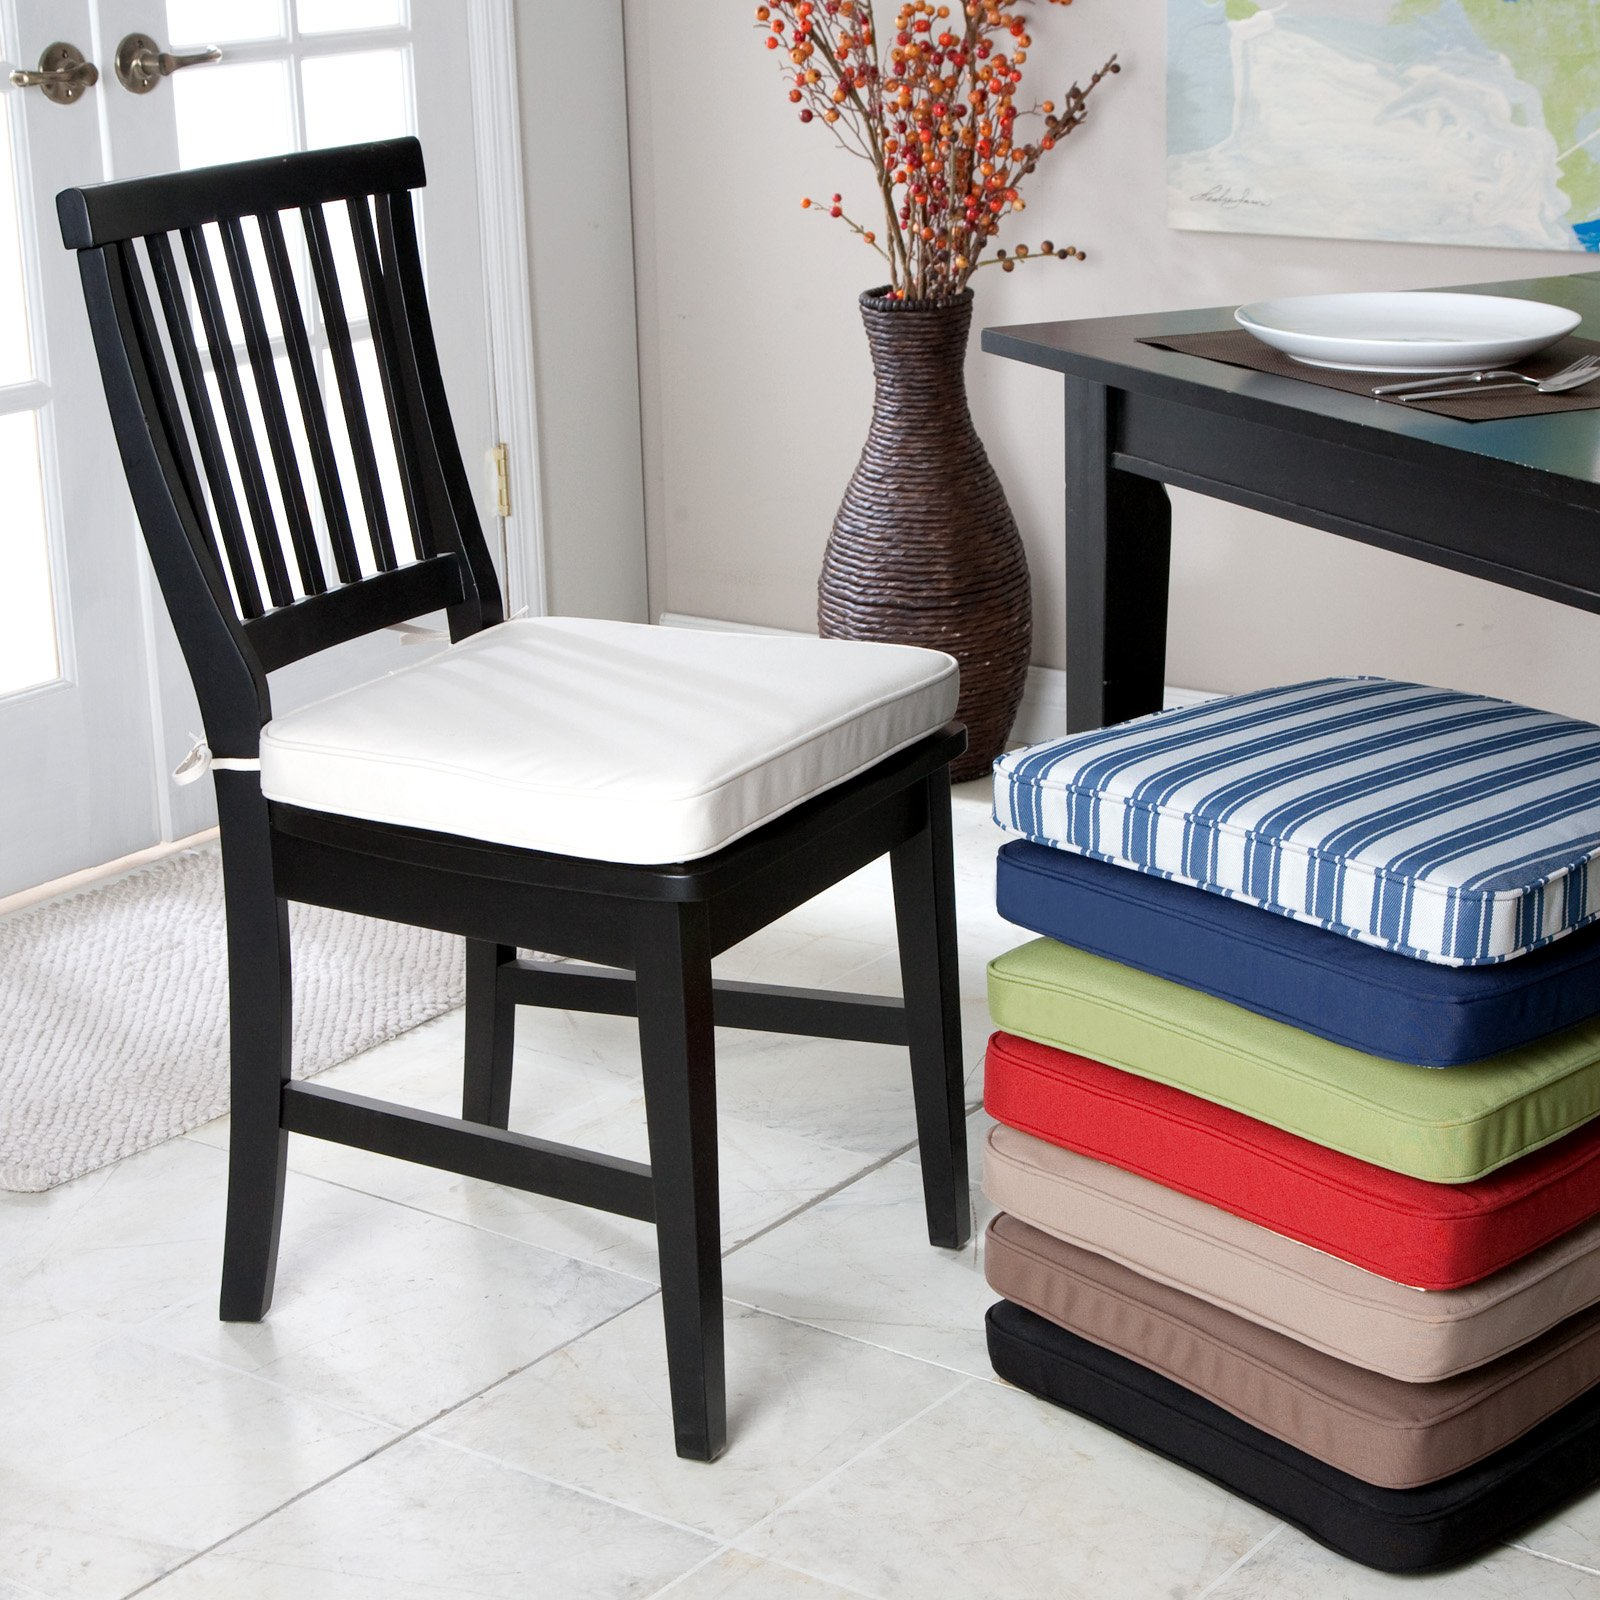 Cushions for dining room chairs Photo - 1